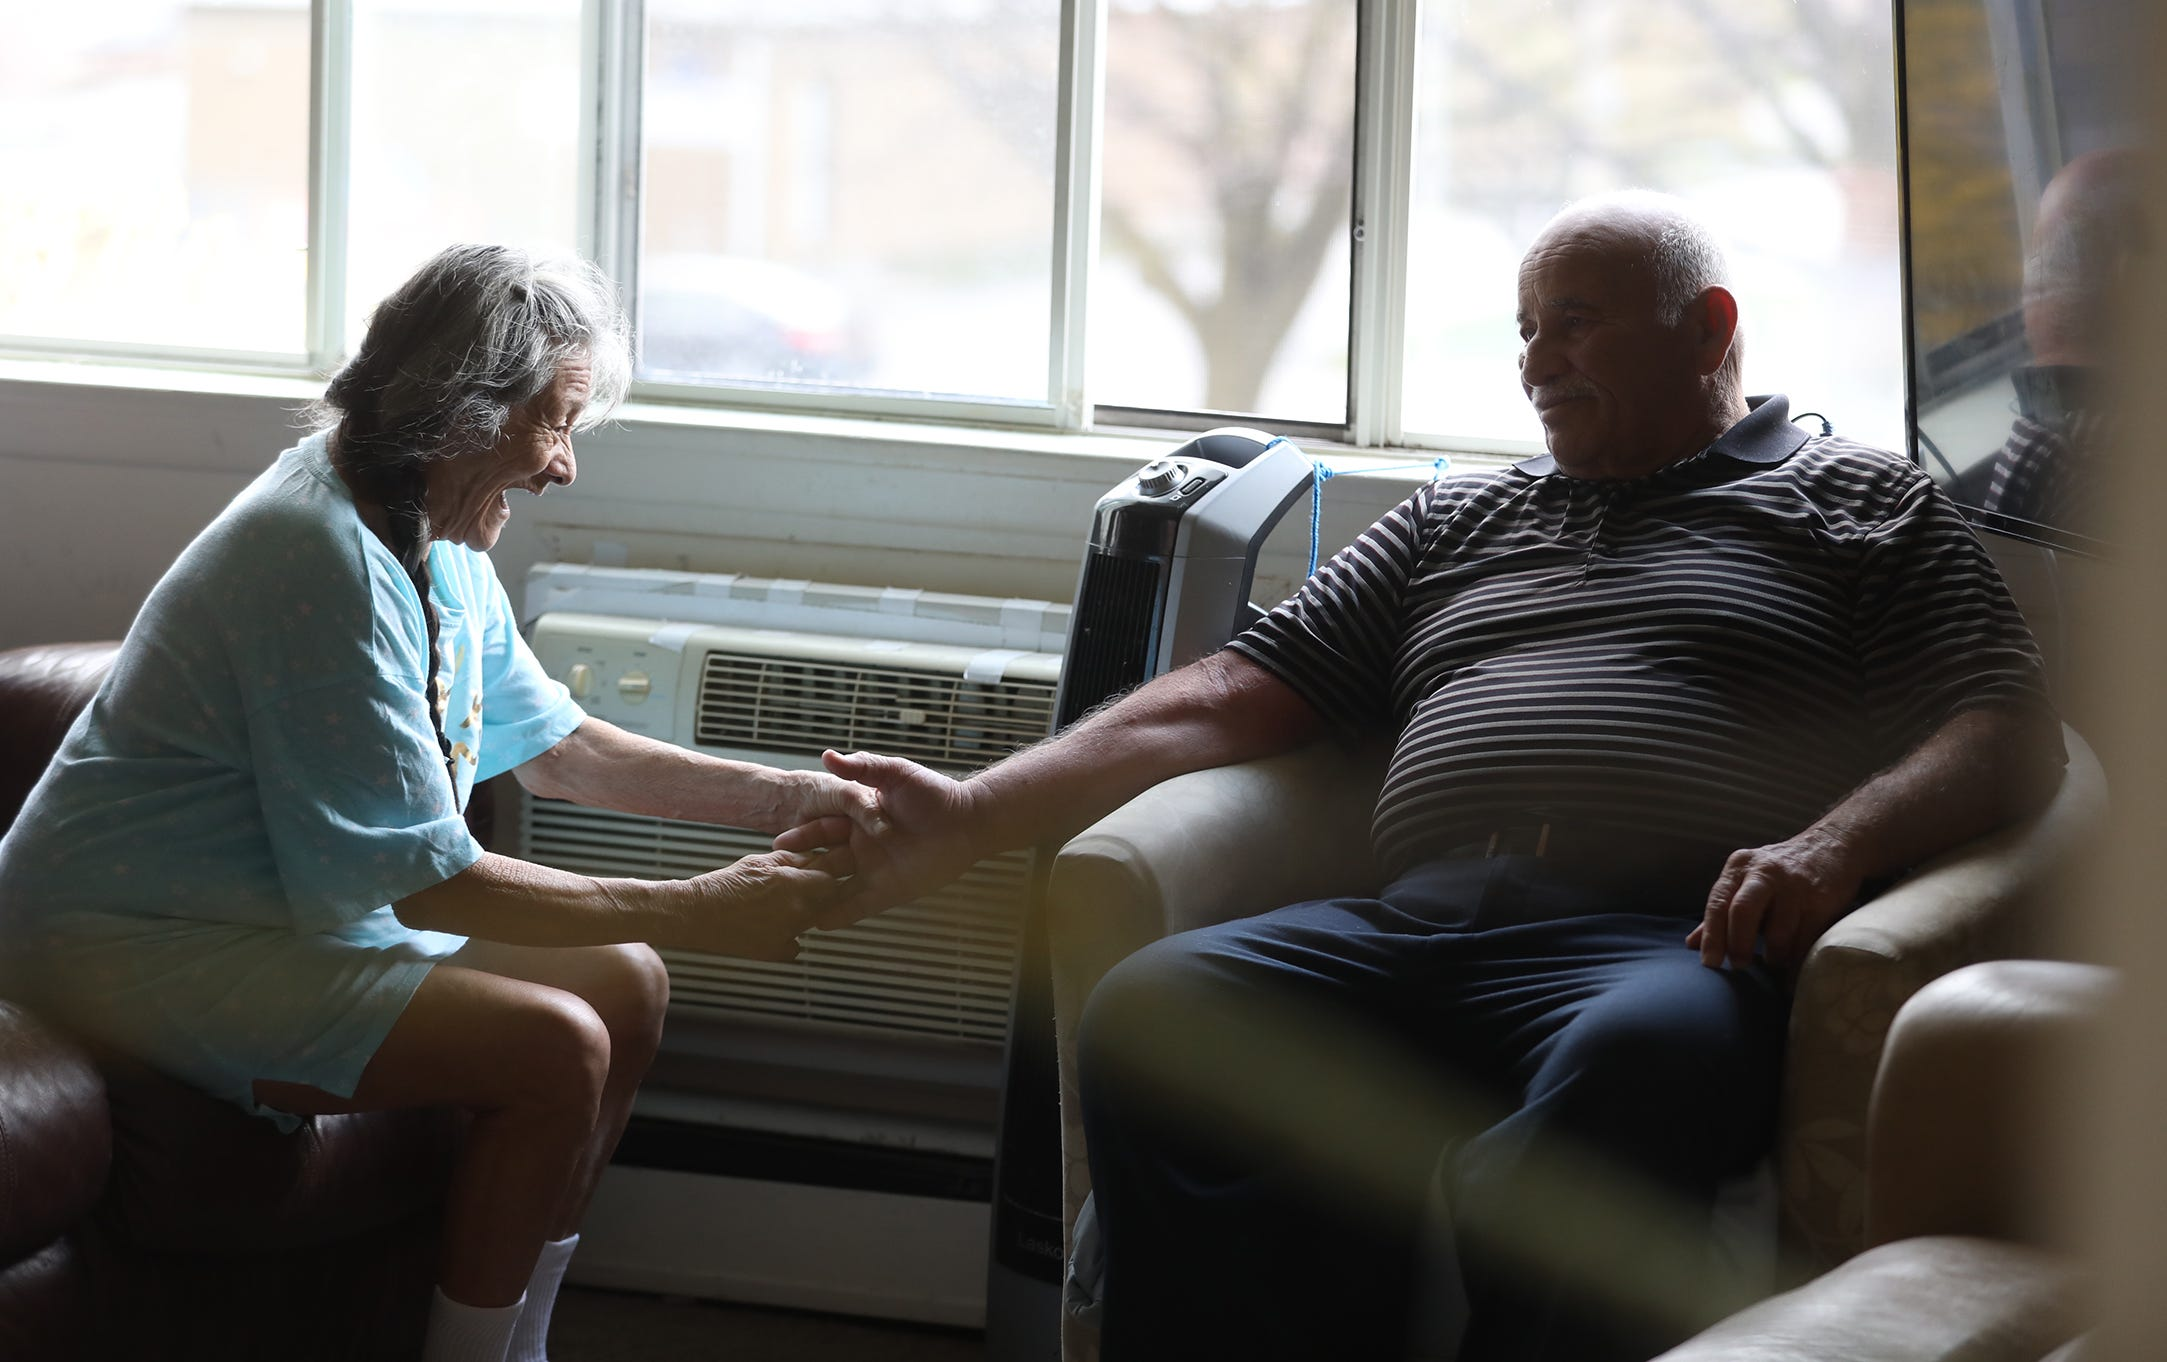 Maria Rodriguez, who has dementia and diabetes, has memory loss but always smiles when she sees her husband of 59 years, Angel Moreno.  Rodriguez sits down the living room, Wednesday, April 15, 2020 and starts holding her husband's hand and shaking it.  The couple's daughters Nancy and Carmen Moreno are always at their Irondequoit apartment helping out.